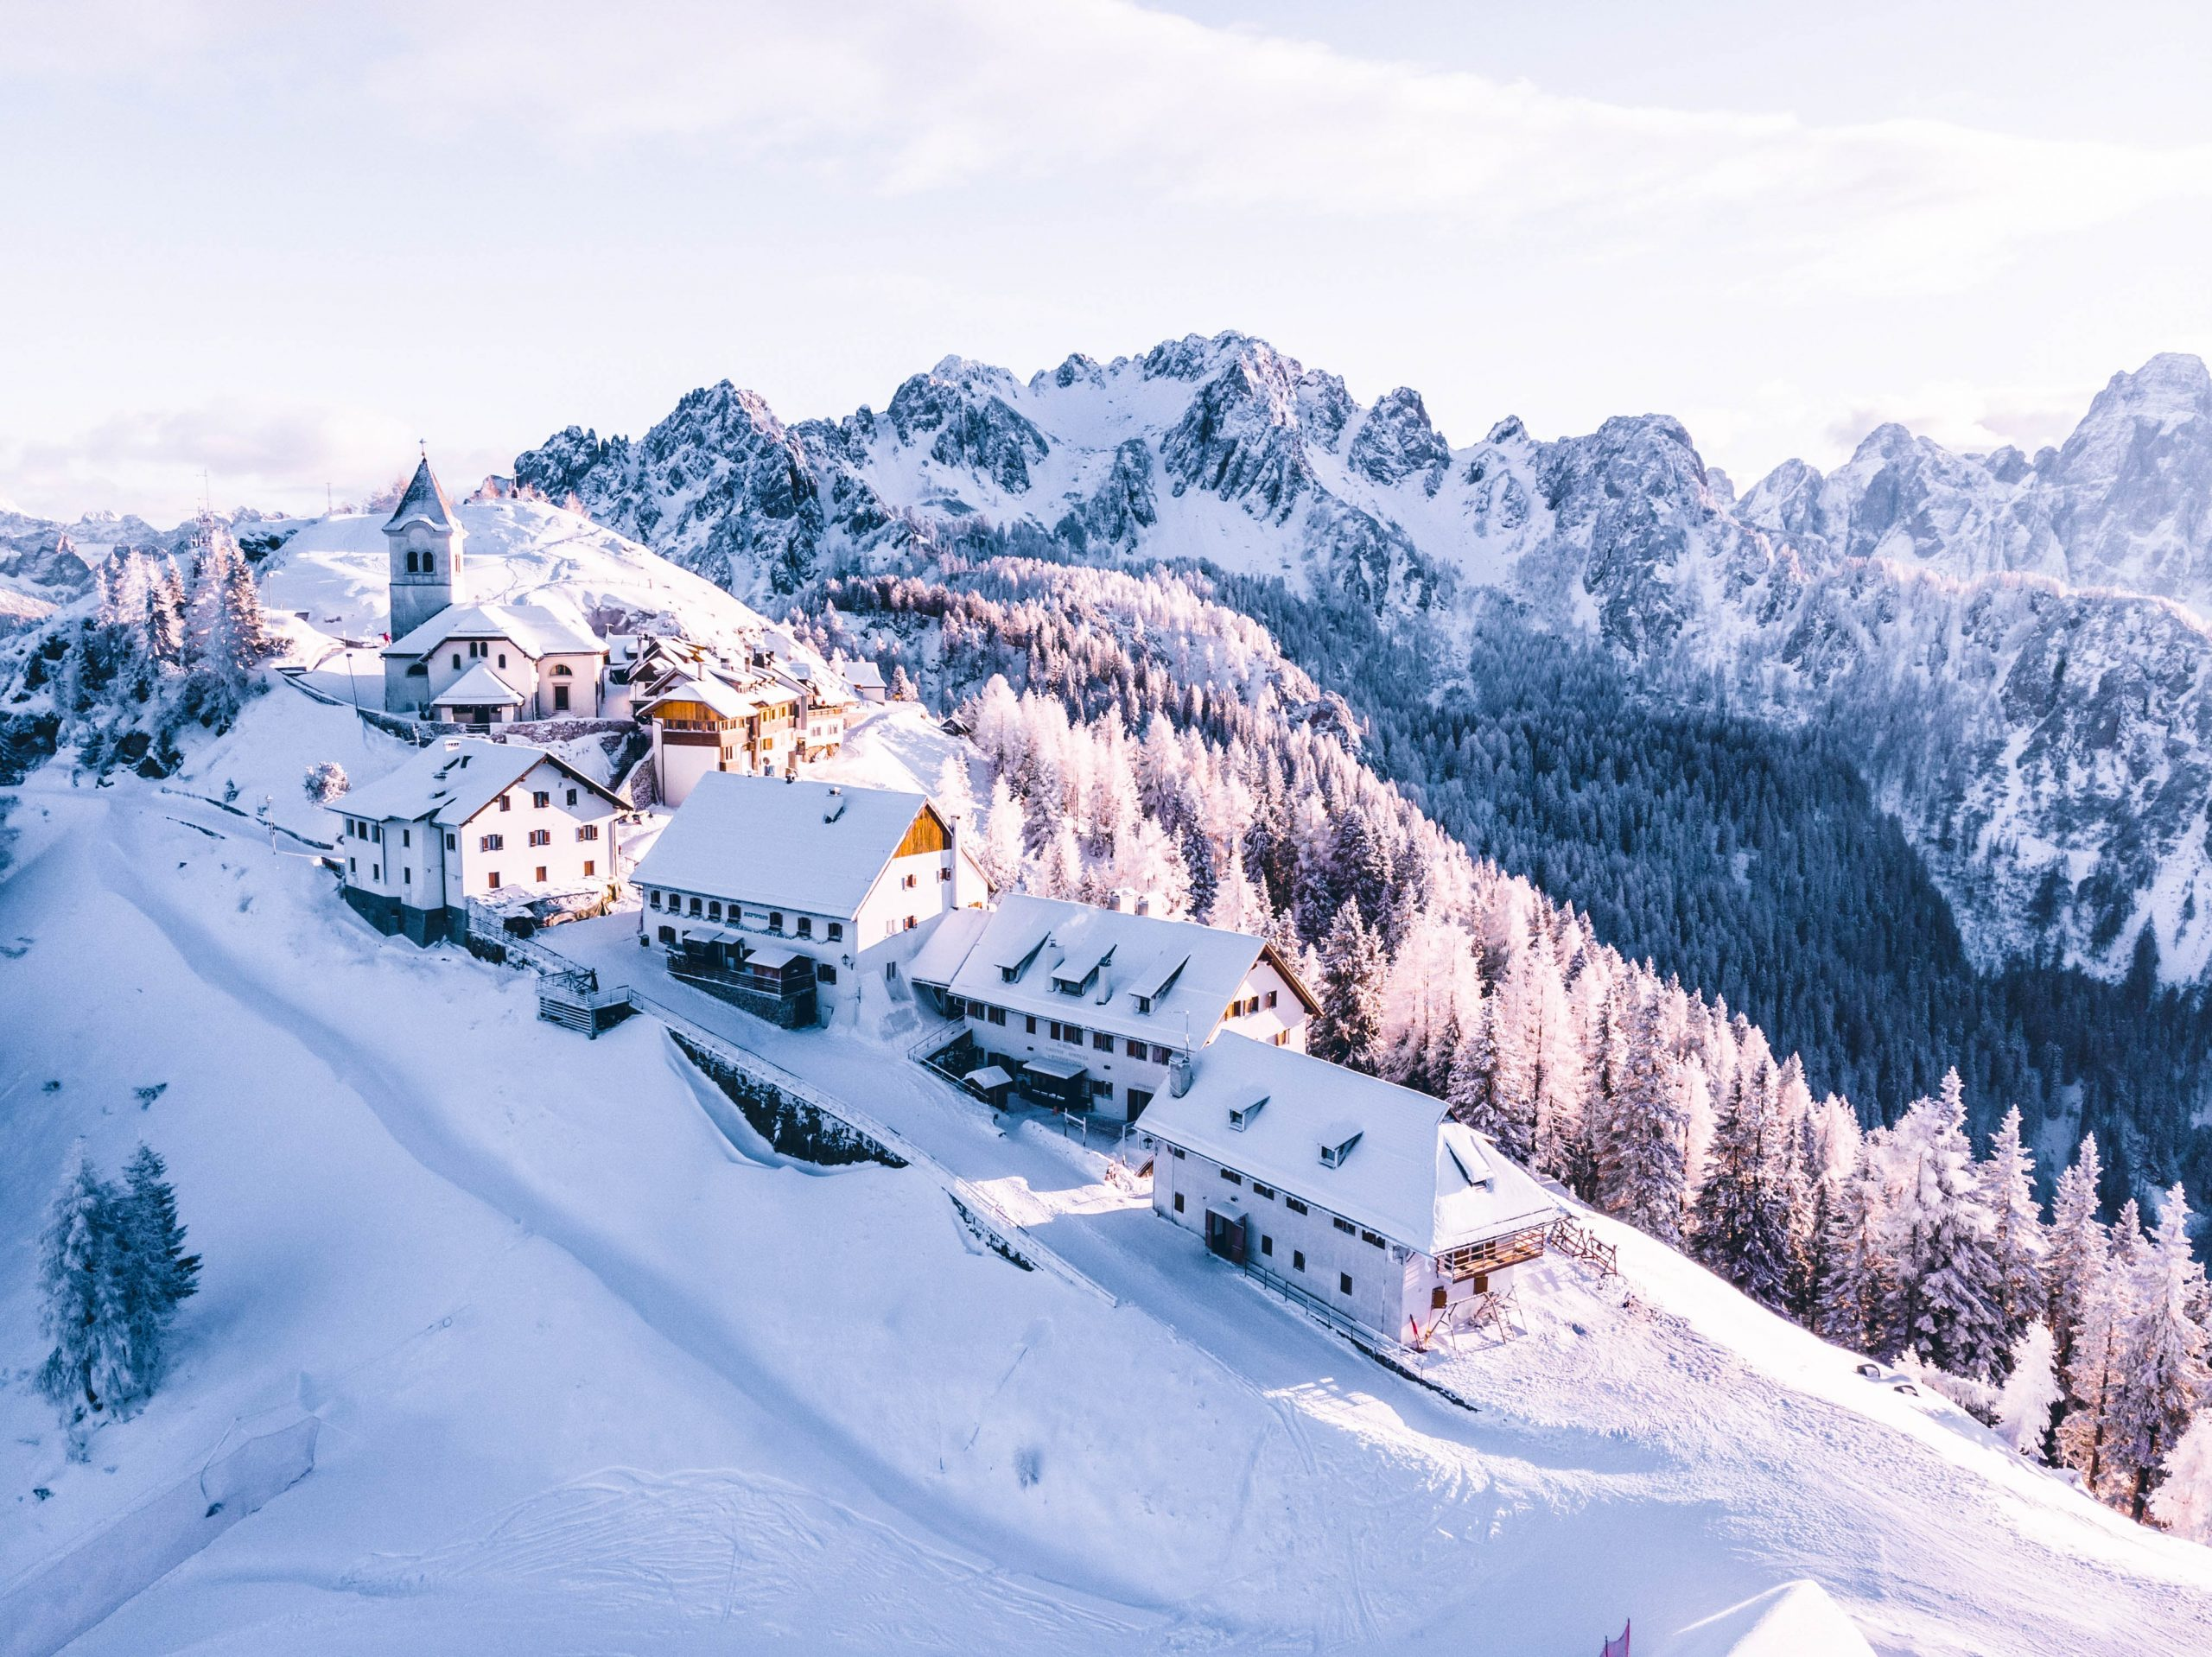 """Featured image for the article """"Stunning Snowy Scenes: Beautiful Pictures of Winter"""" on phmillennia.com"""